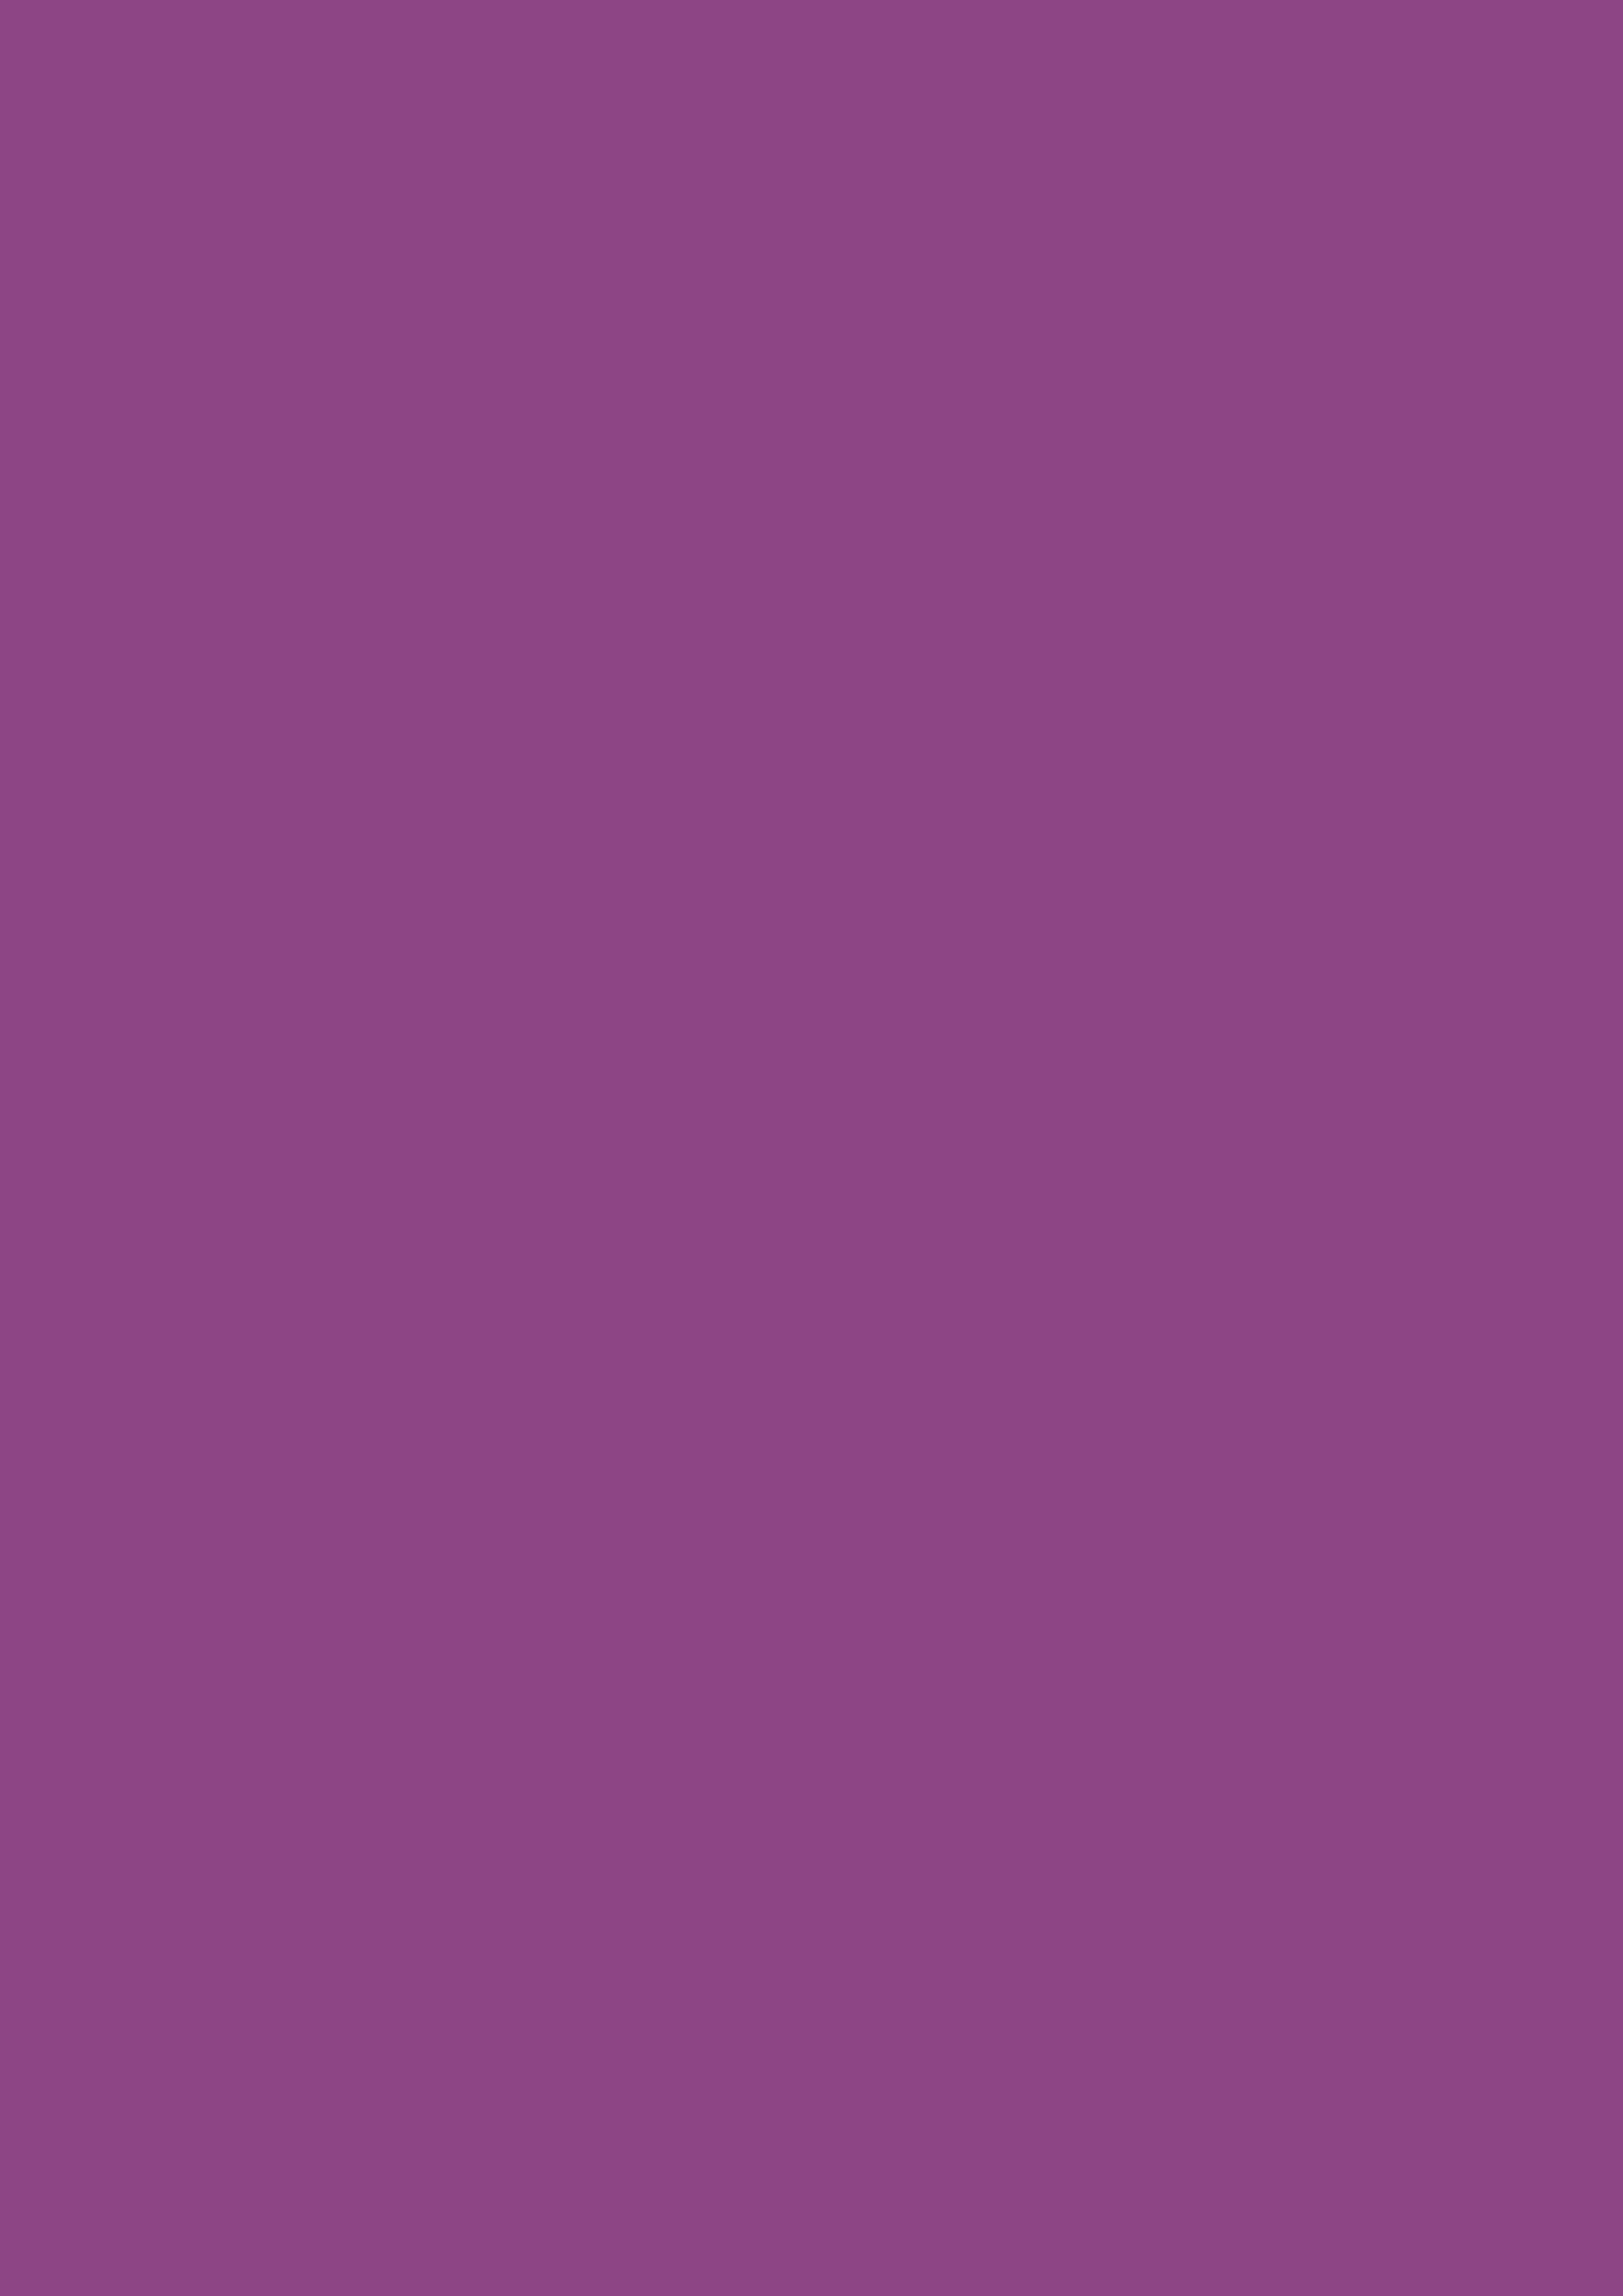 2480x3508 Plum Traditional Solid Color Background